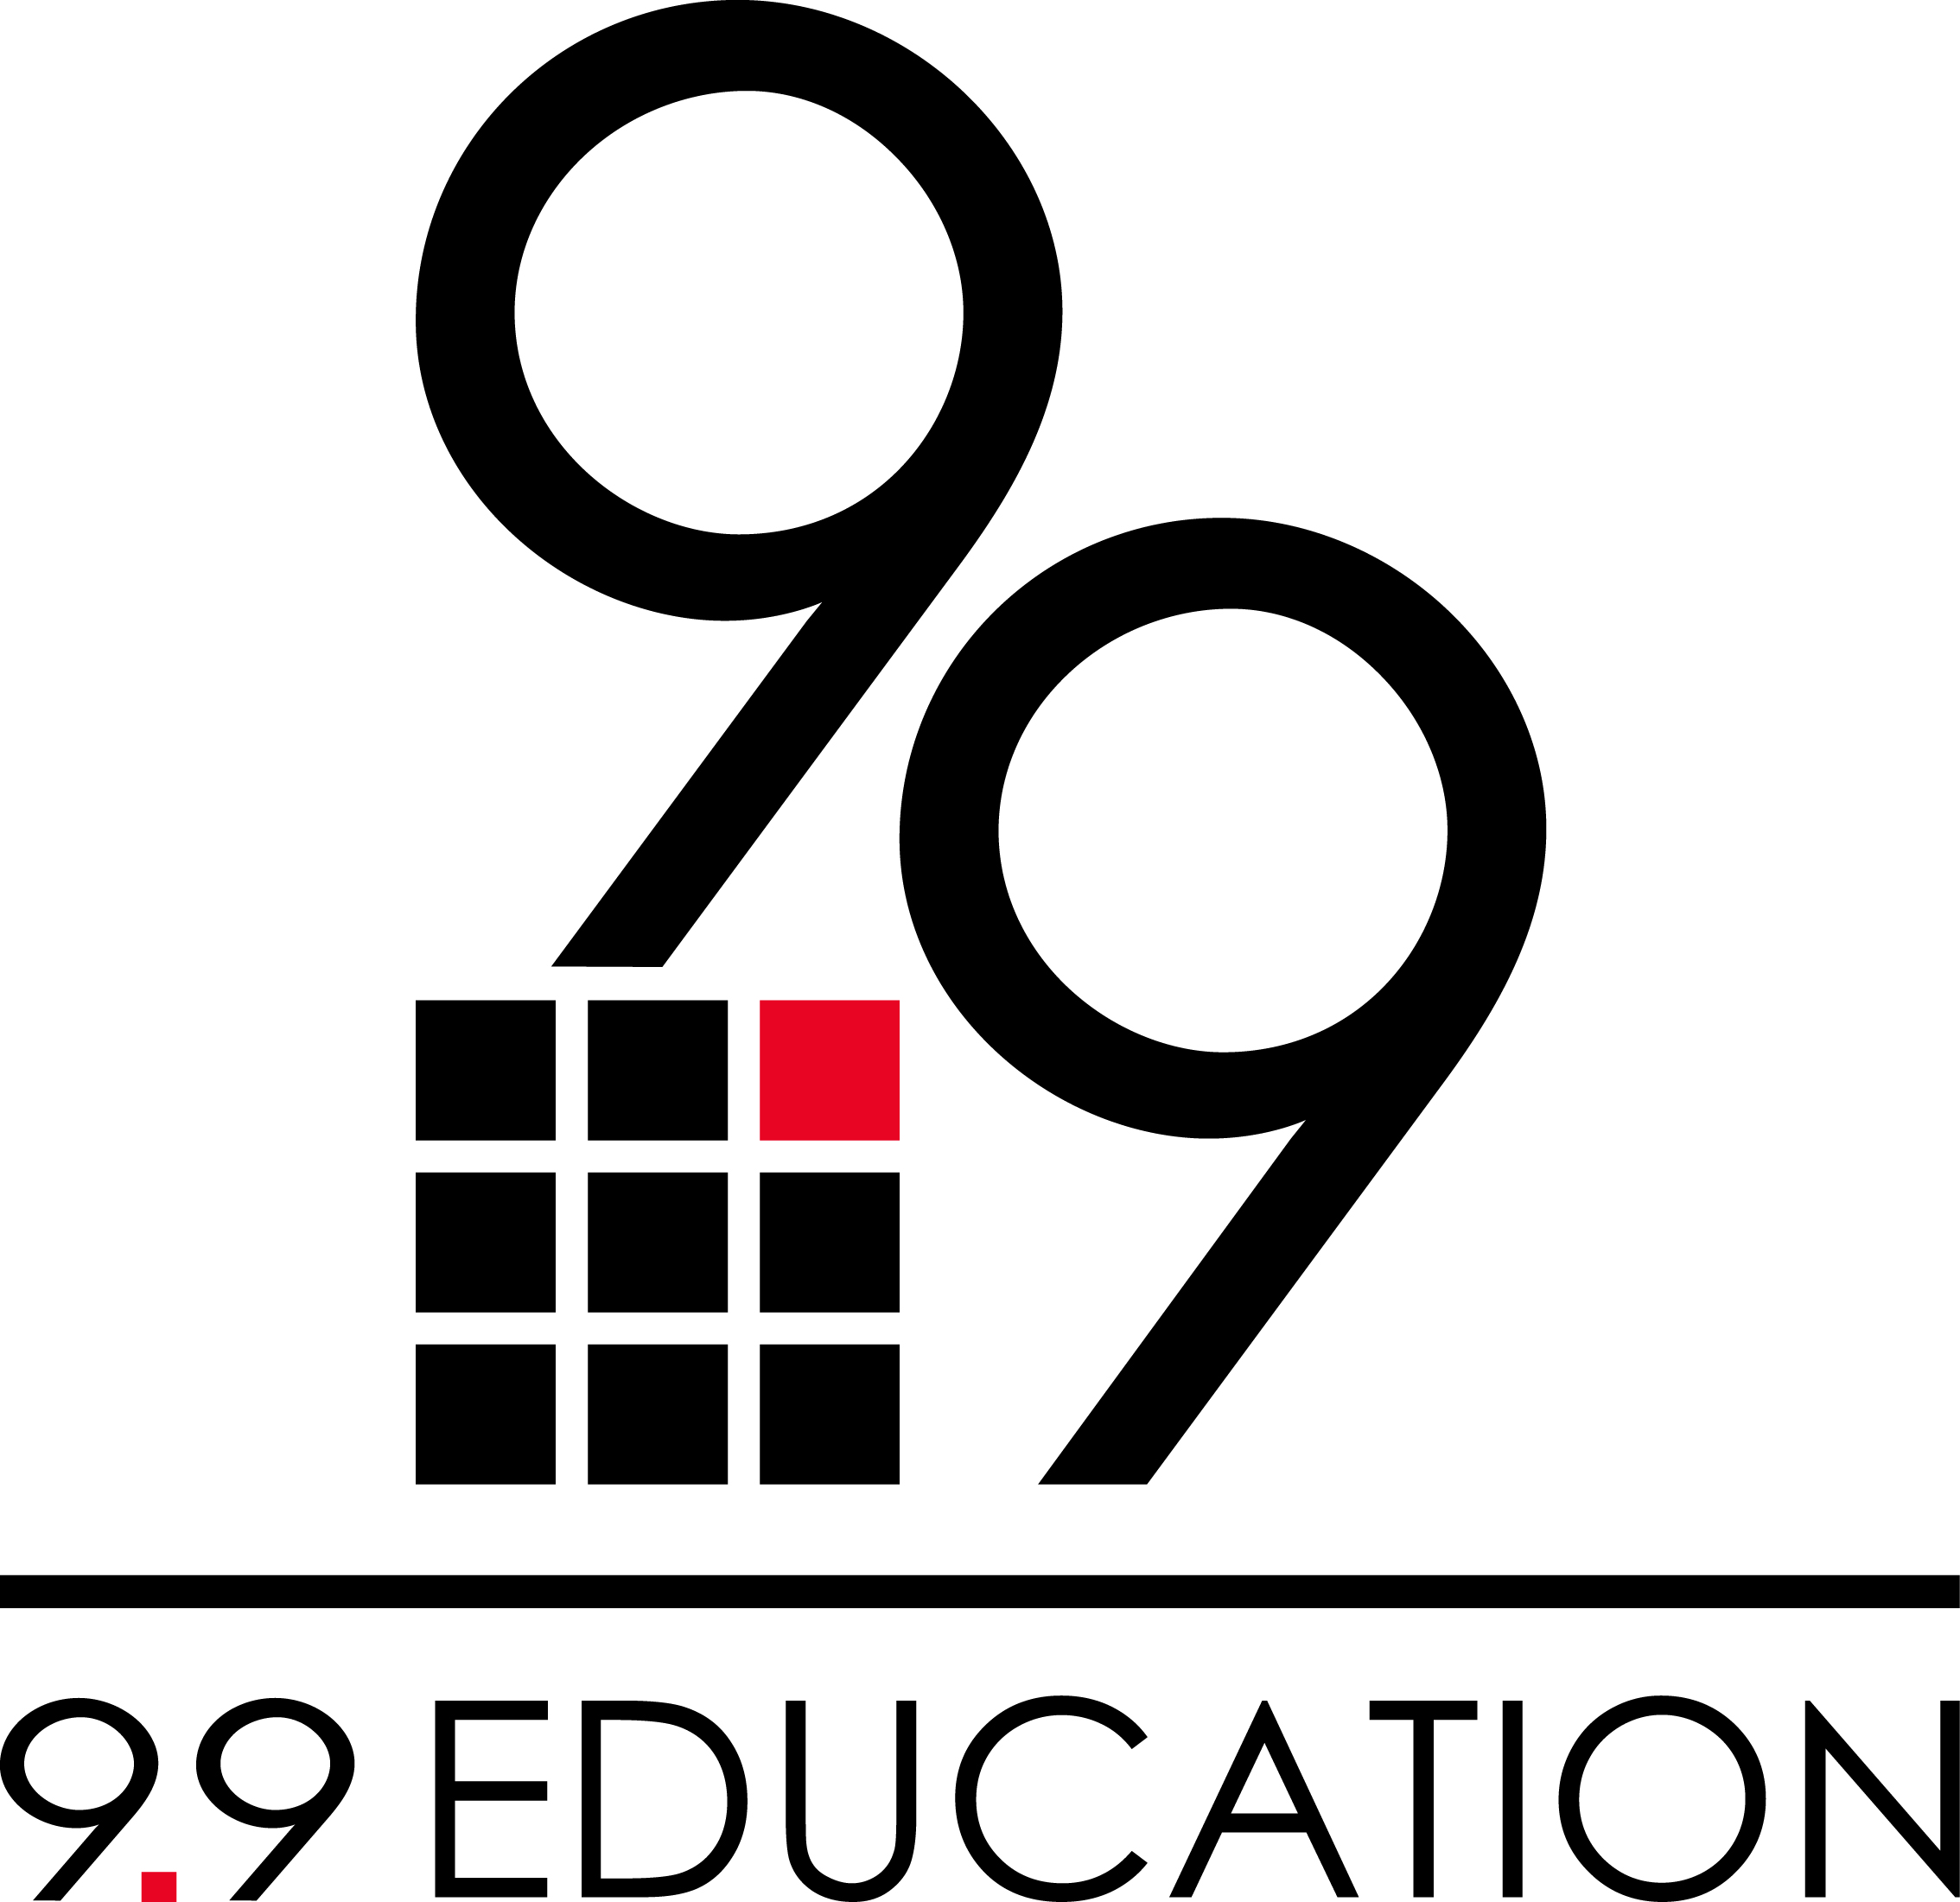 9.9 Education